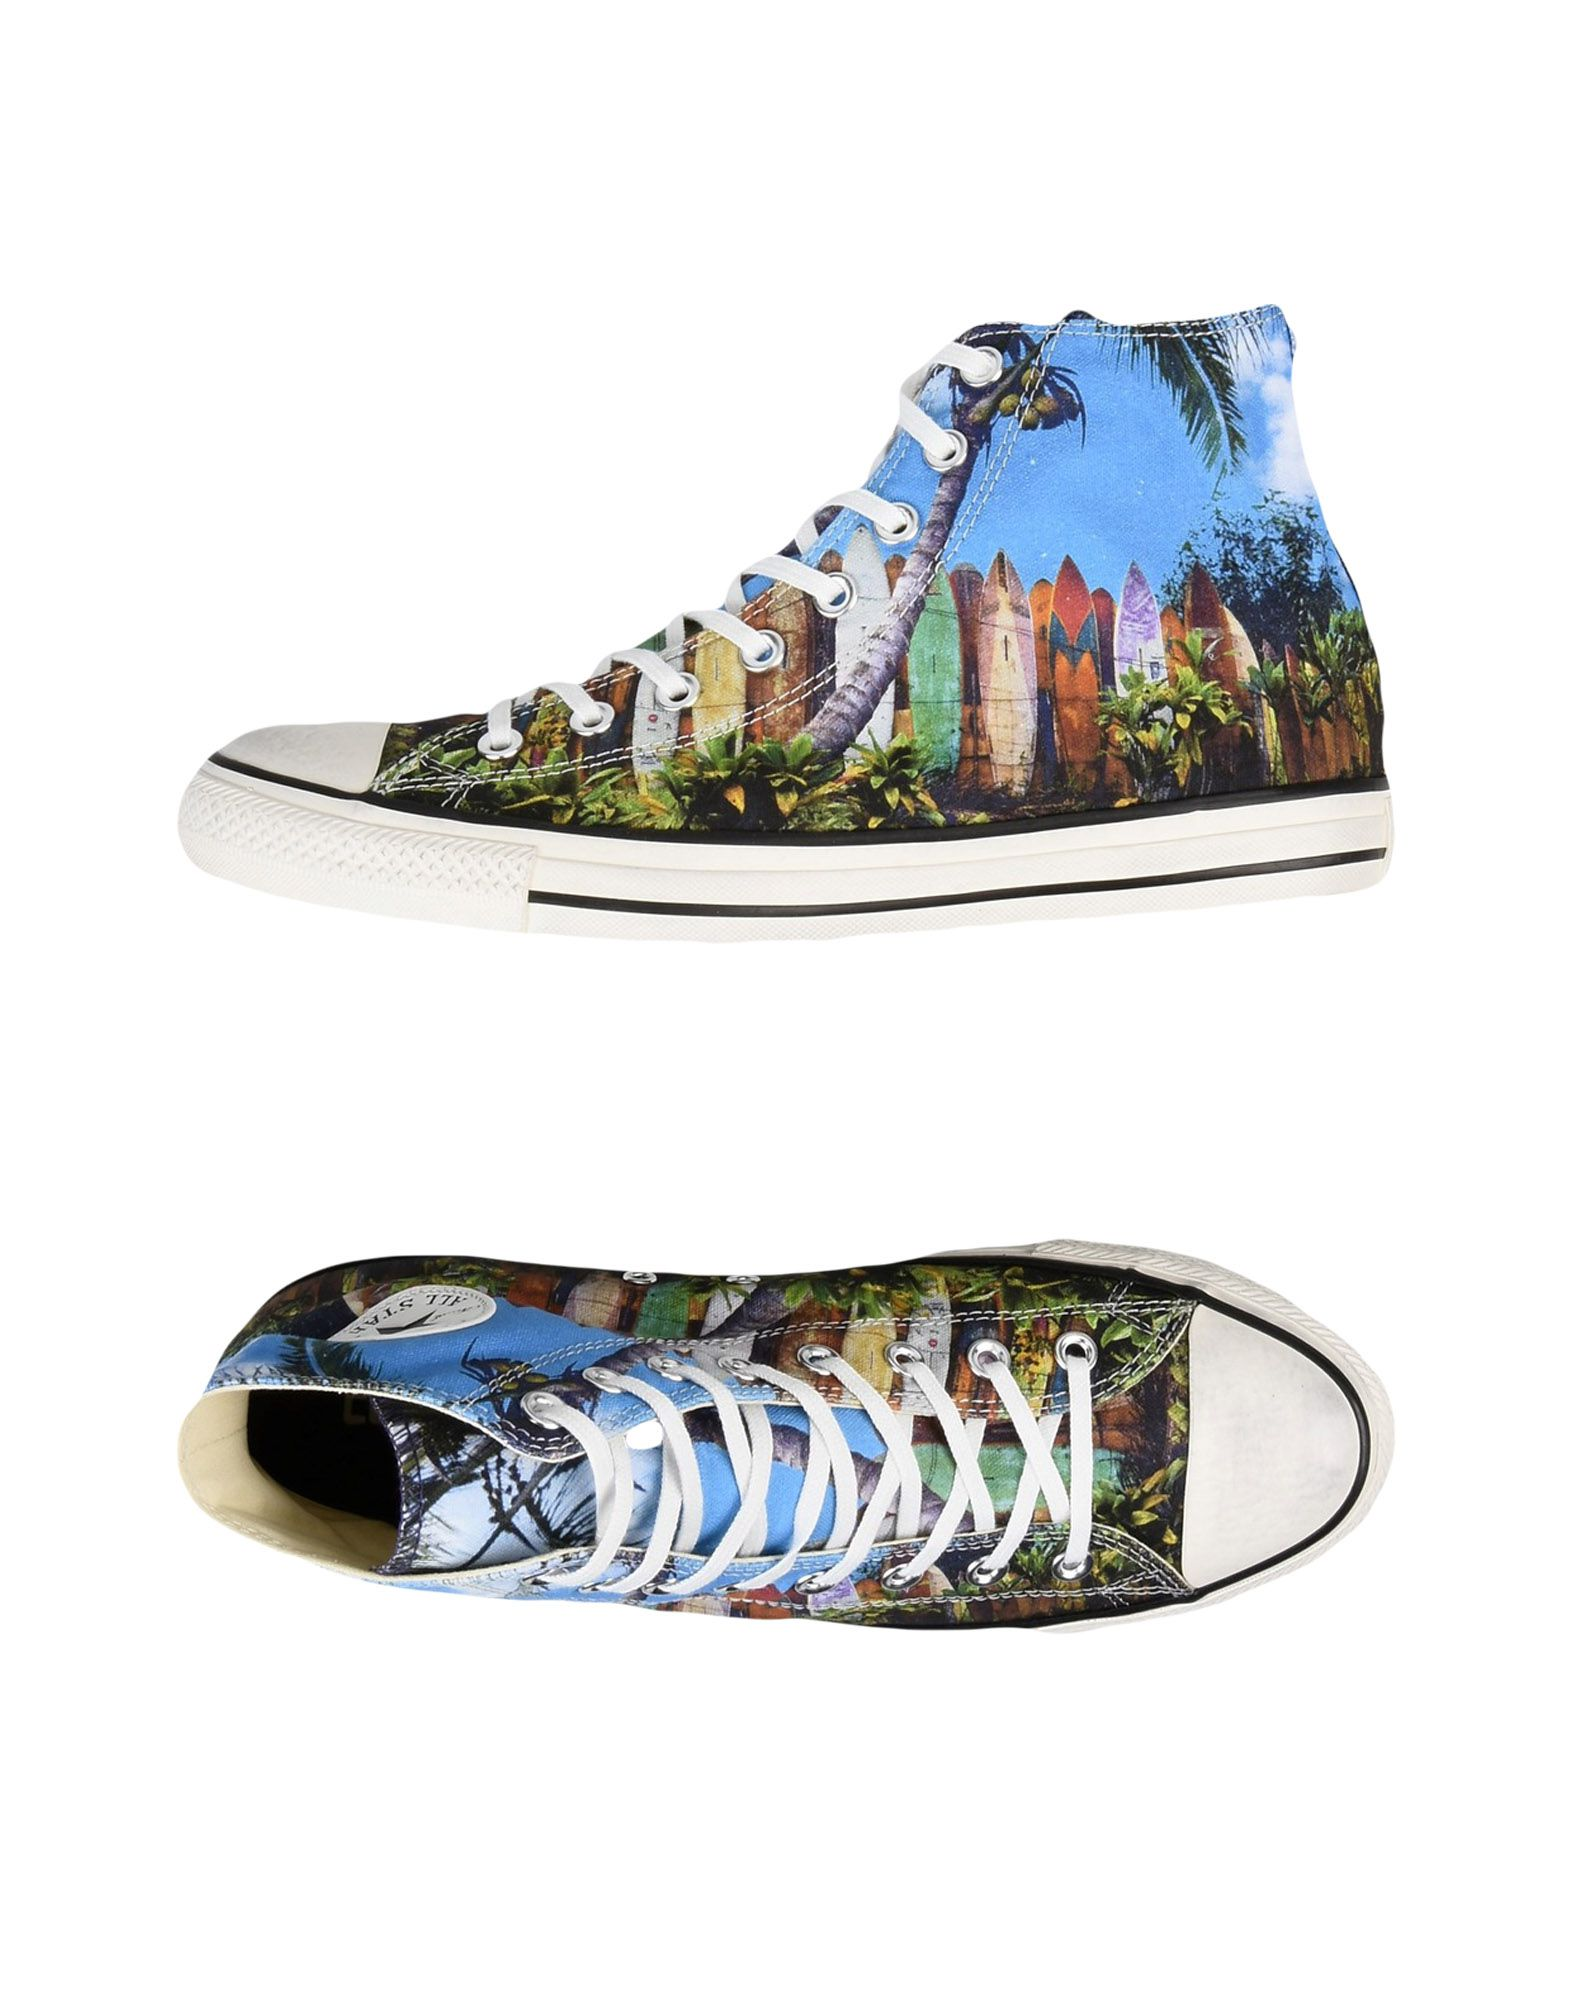 Sneakers Converse All Star Ct As Hi Canvas Print Distressed - Uomo - 11216340PI